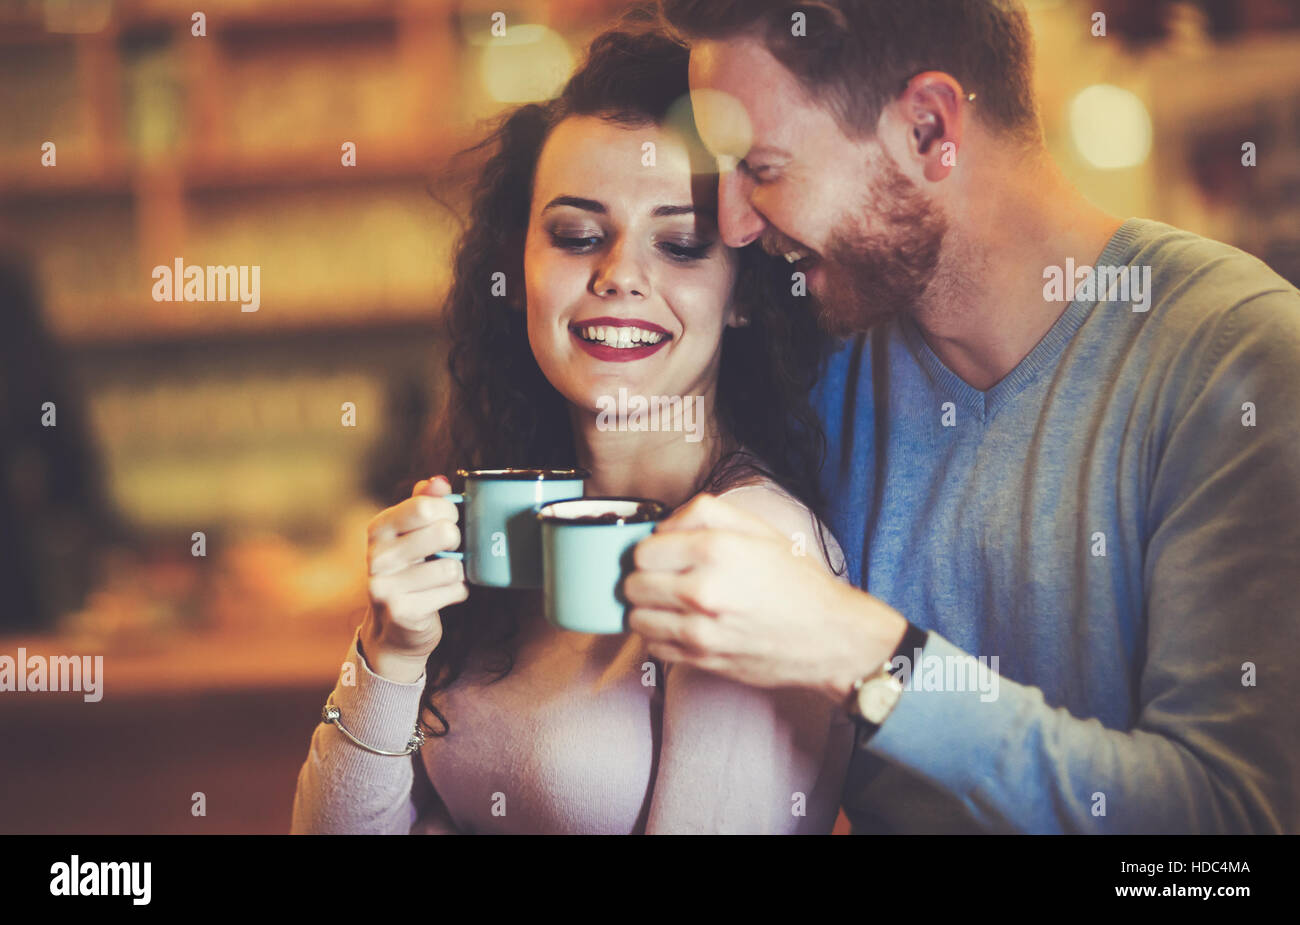 Couple in love dating in restaurant at xmas - Stock Image